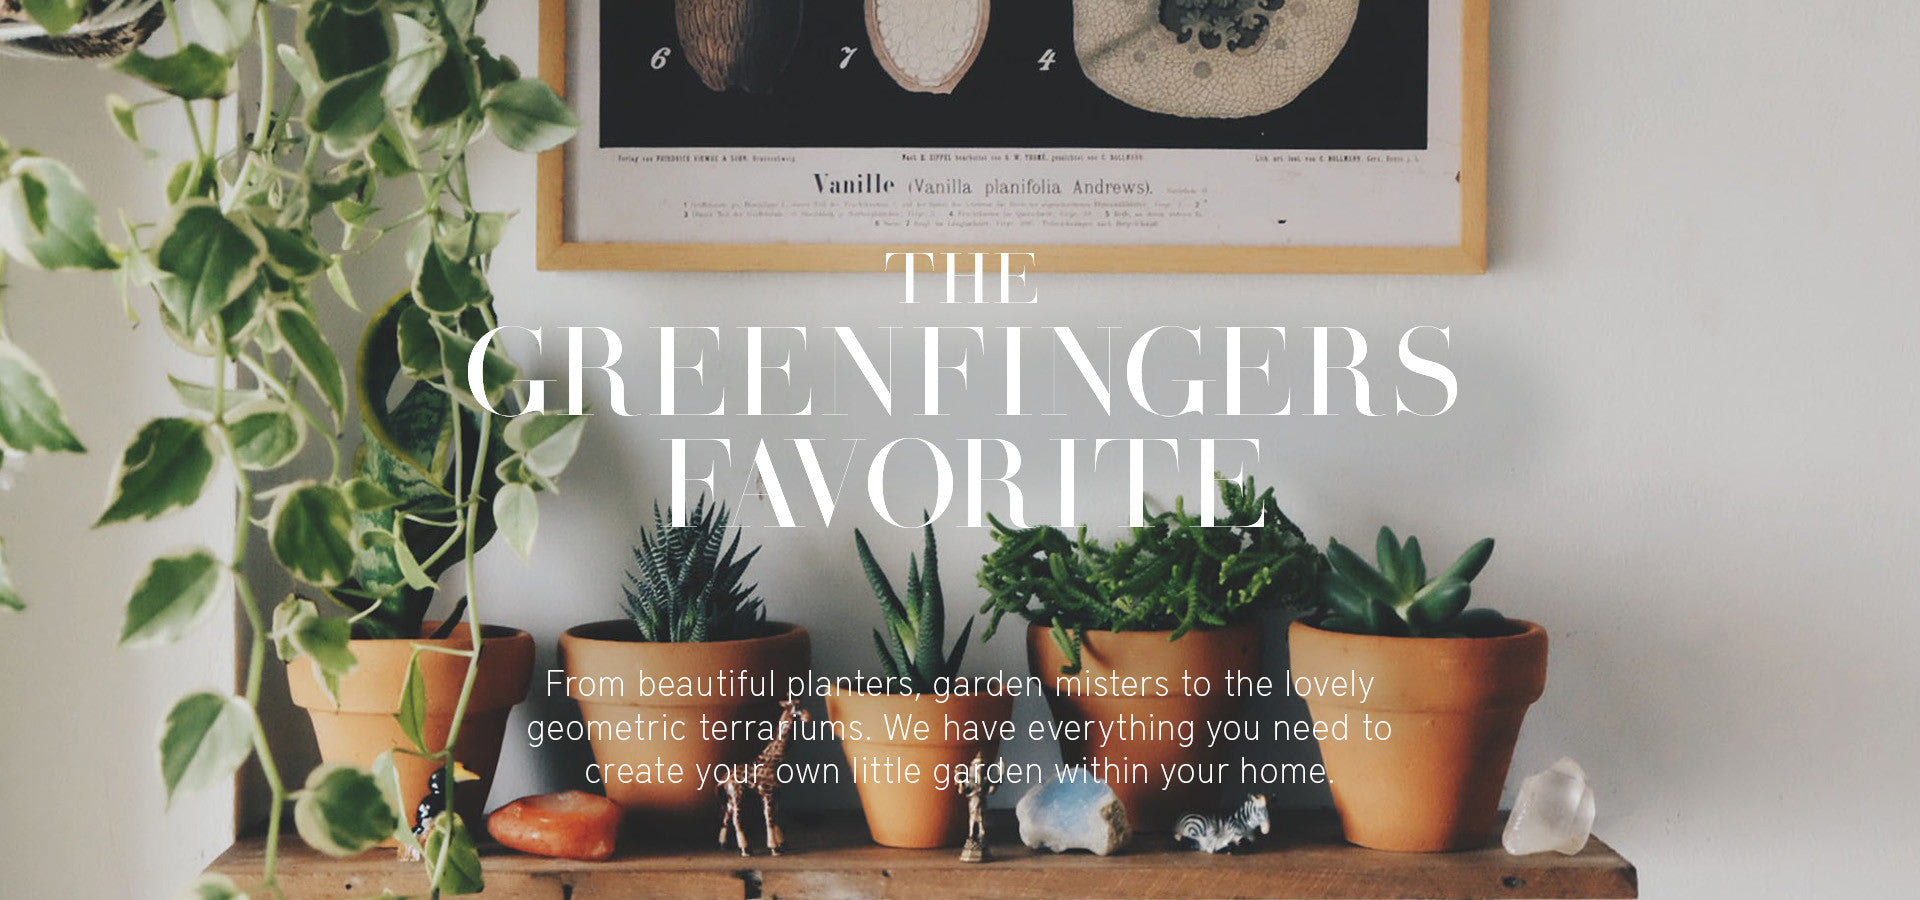 The Greenfingers Favorite